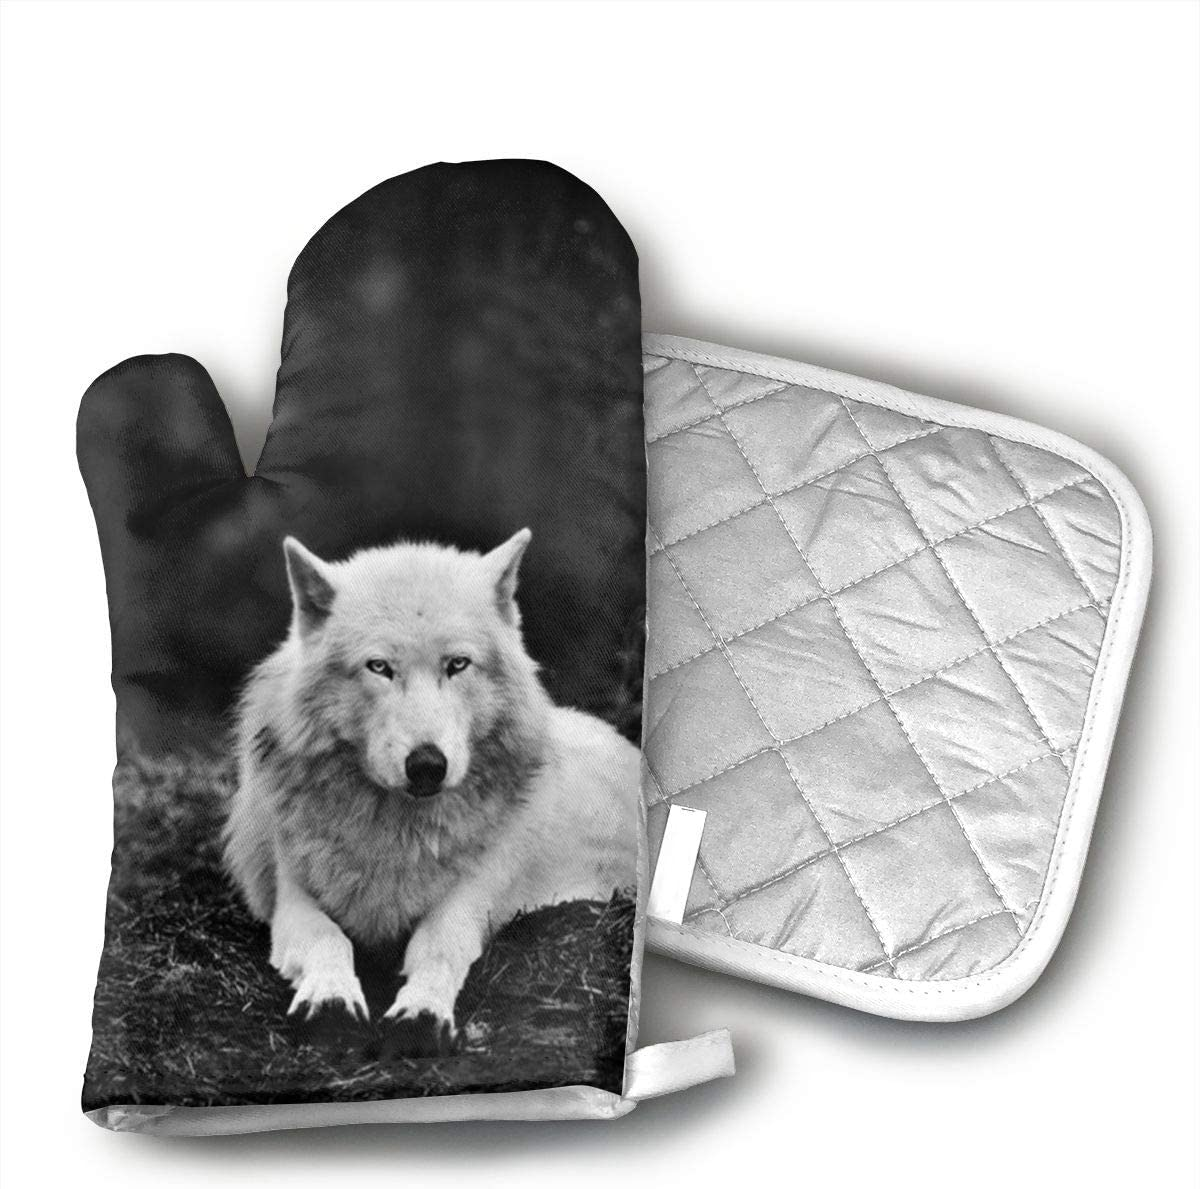 UYRHFS Wolf Wolves Black Oven Mitts and Pot Holder Kitchen Set with, Heat Resistant, Oven Gloves and Pot Holders 2pcs Set for BBQ Cooking Baking